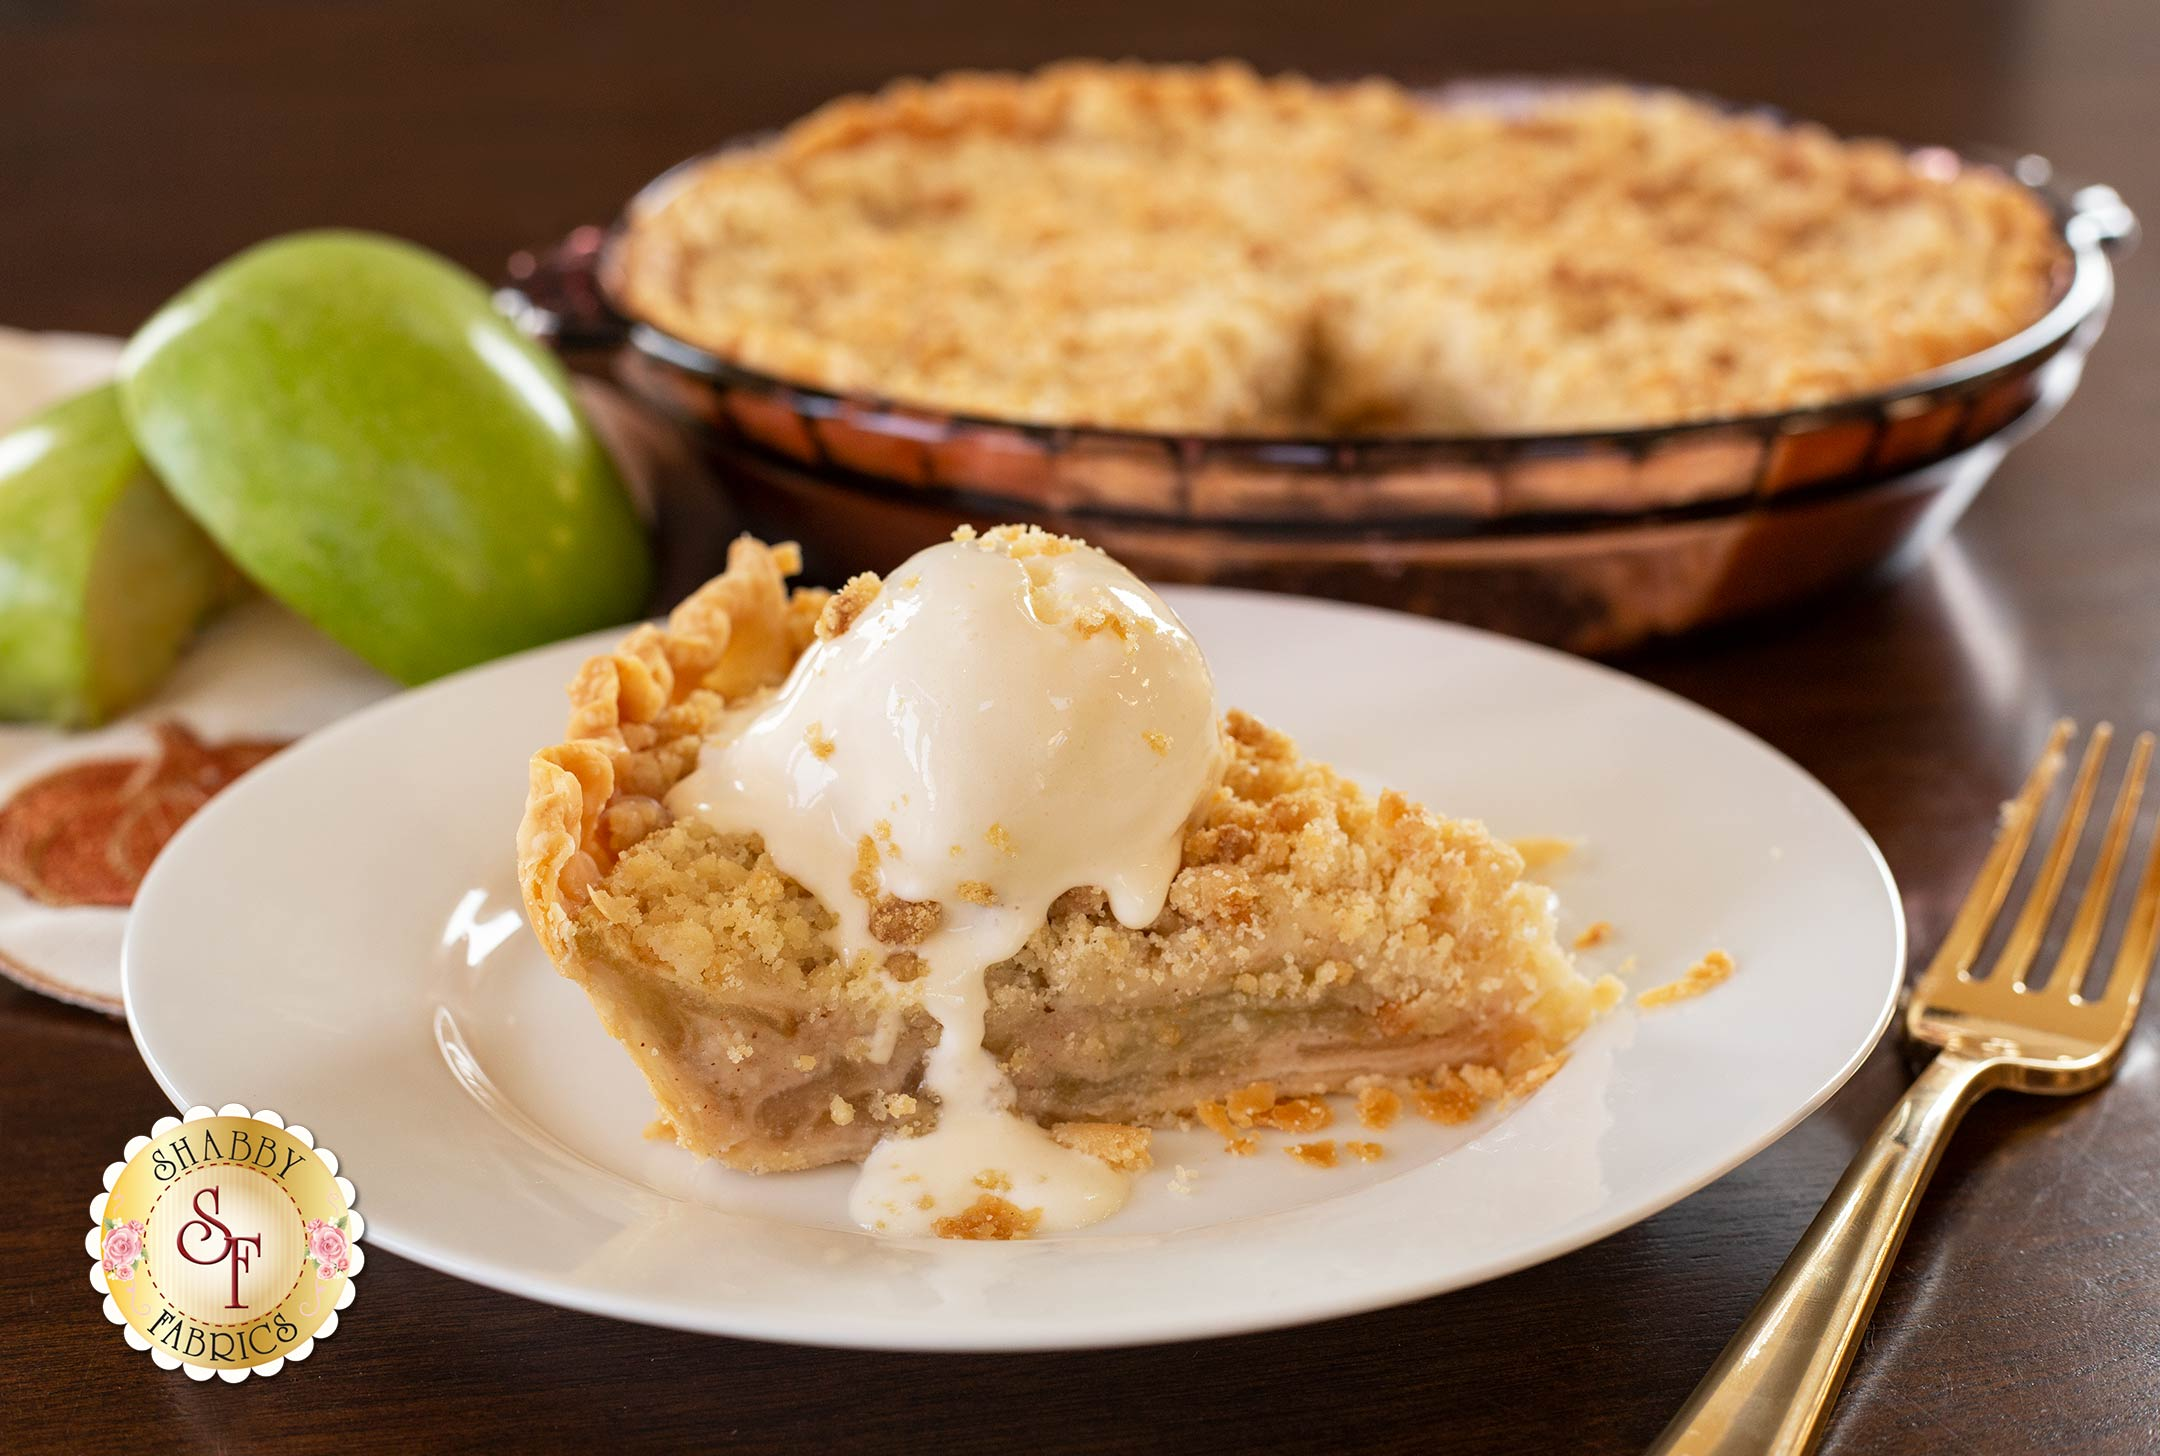 Lynn's Dutch Apple Pie cut into a slice and served with ice cream and apple slices